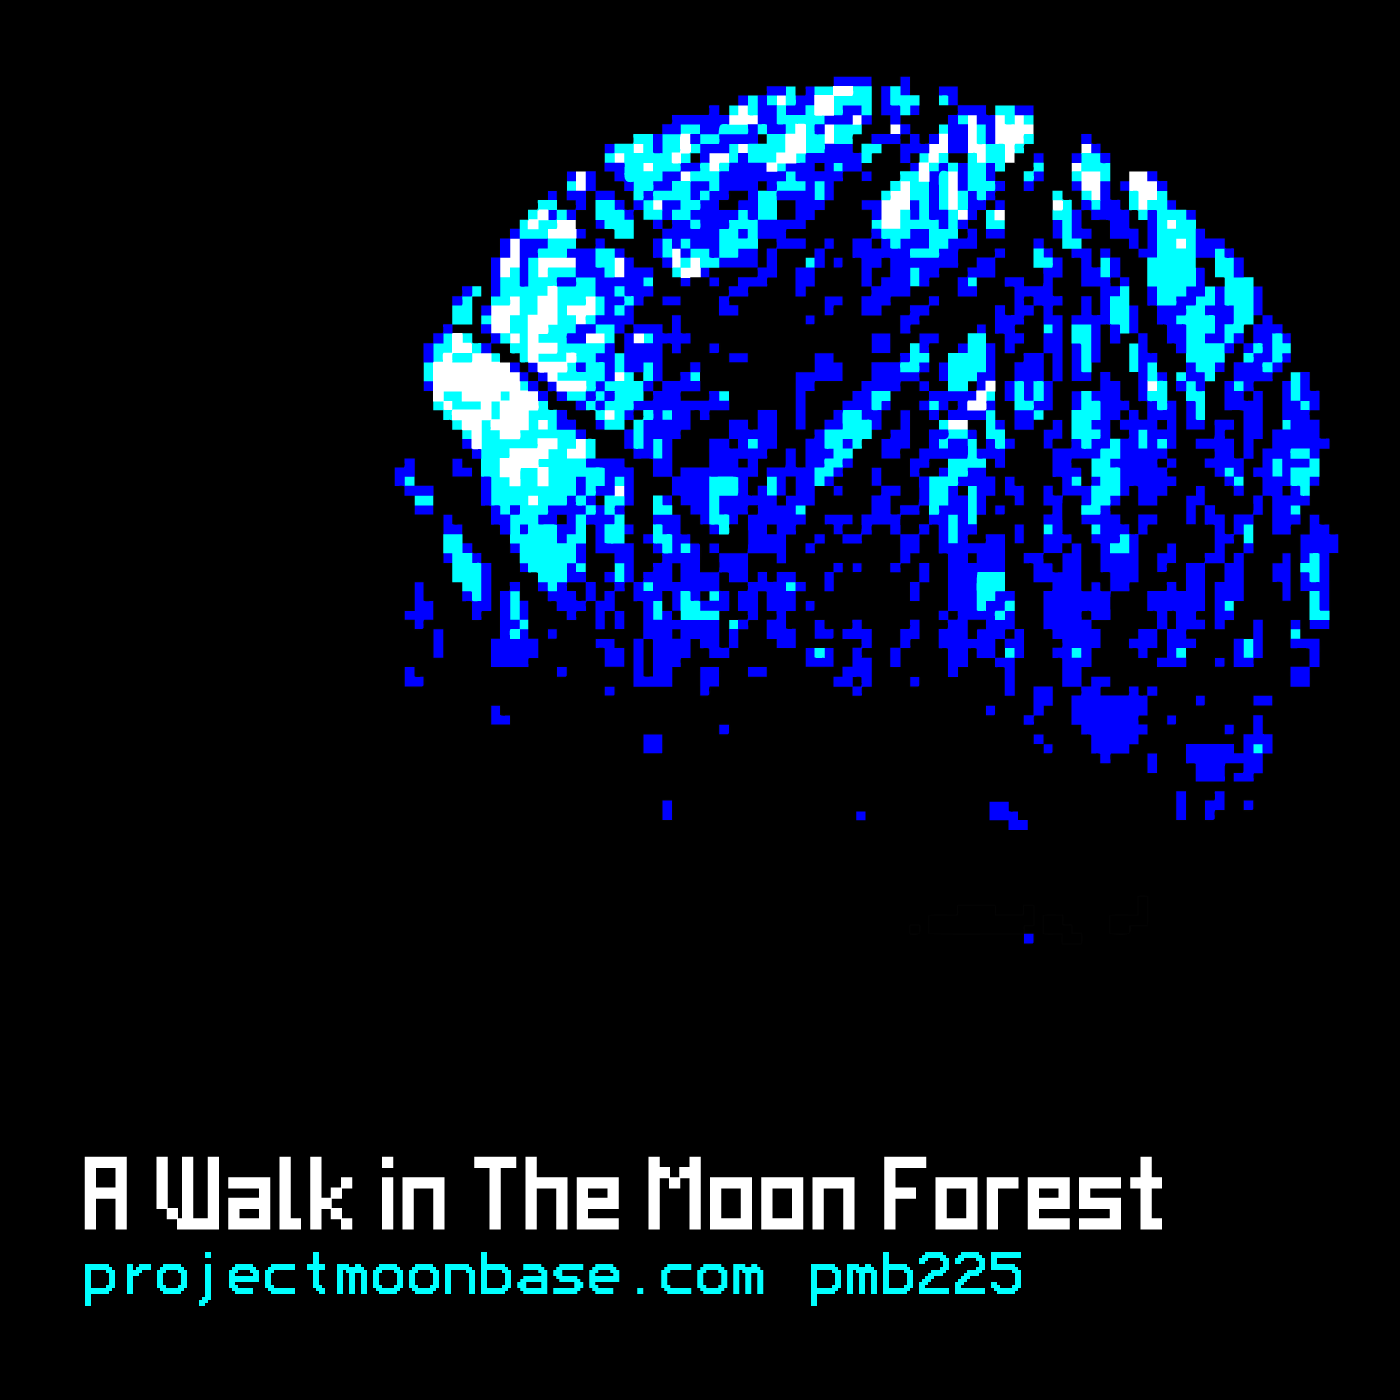 PMB225: A Walk in the Moon Forest